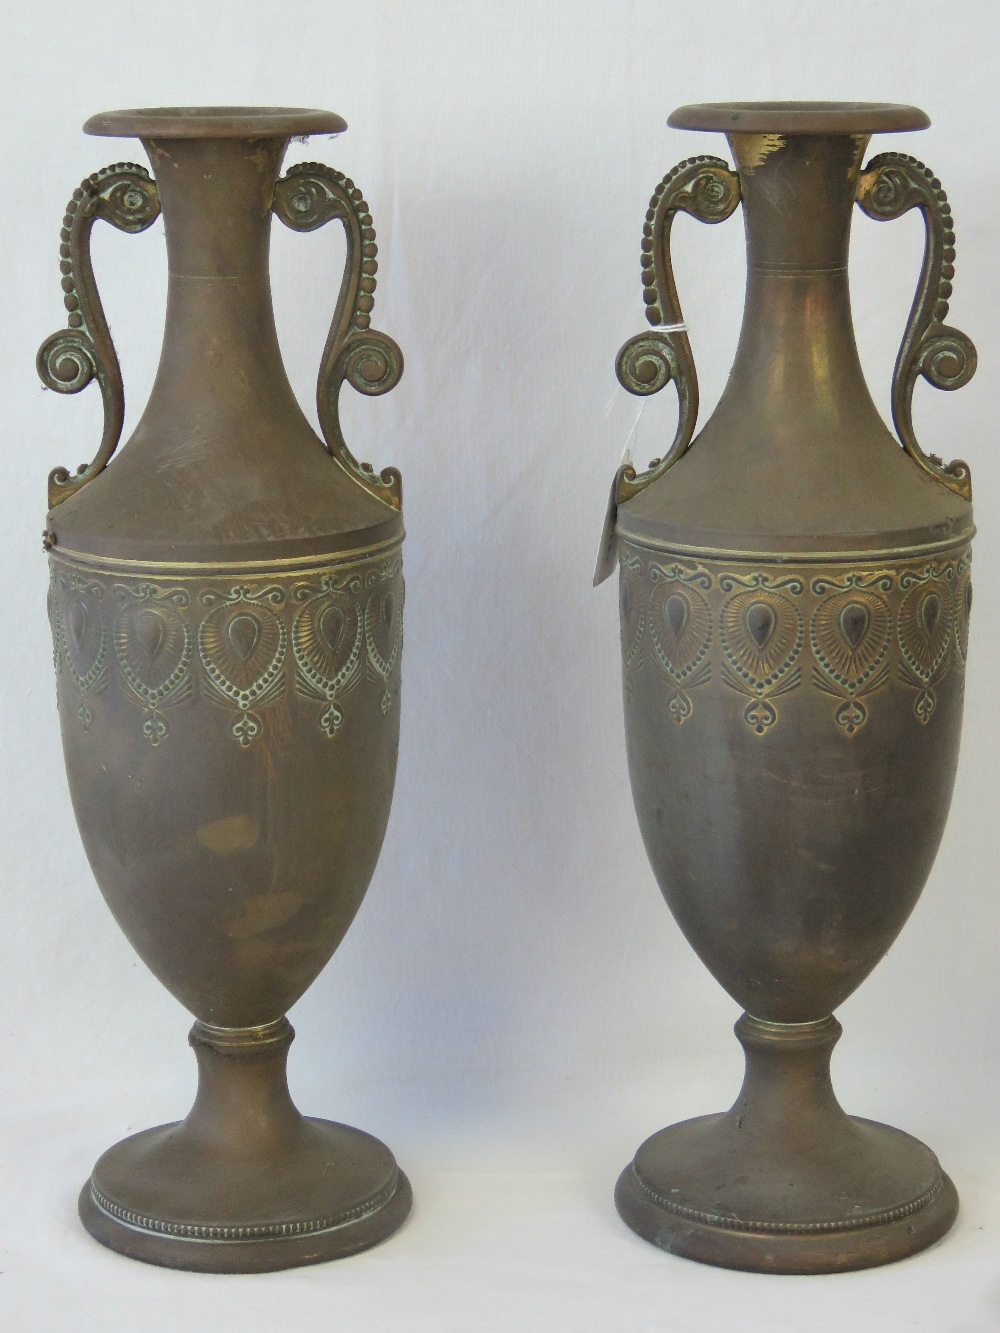 A pair of 20th century brass vases of Ro